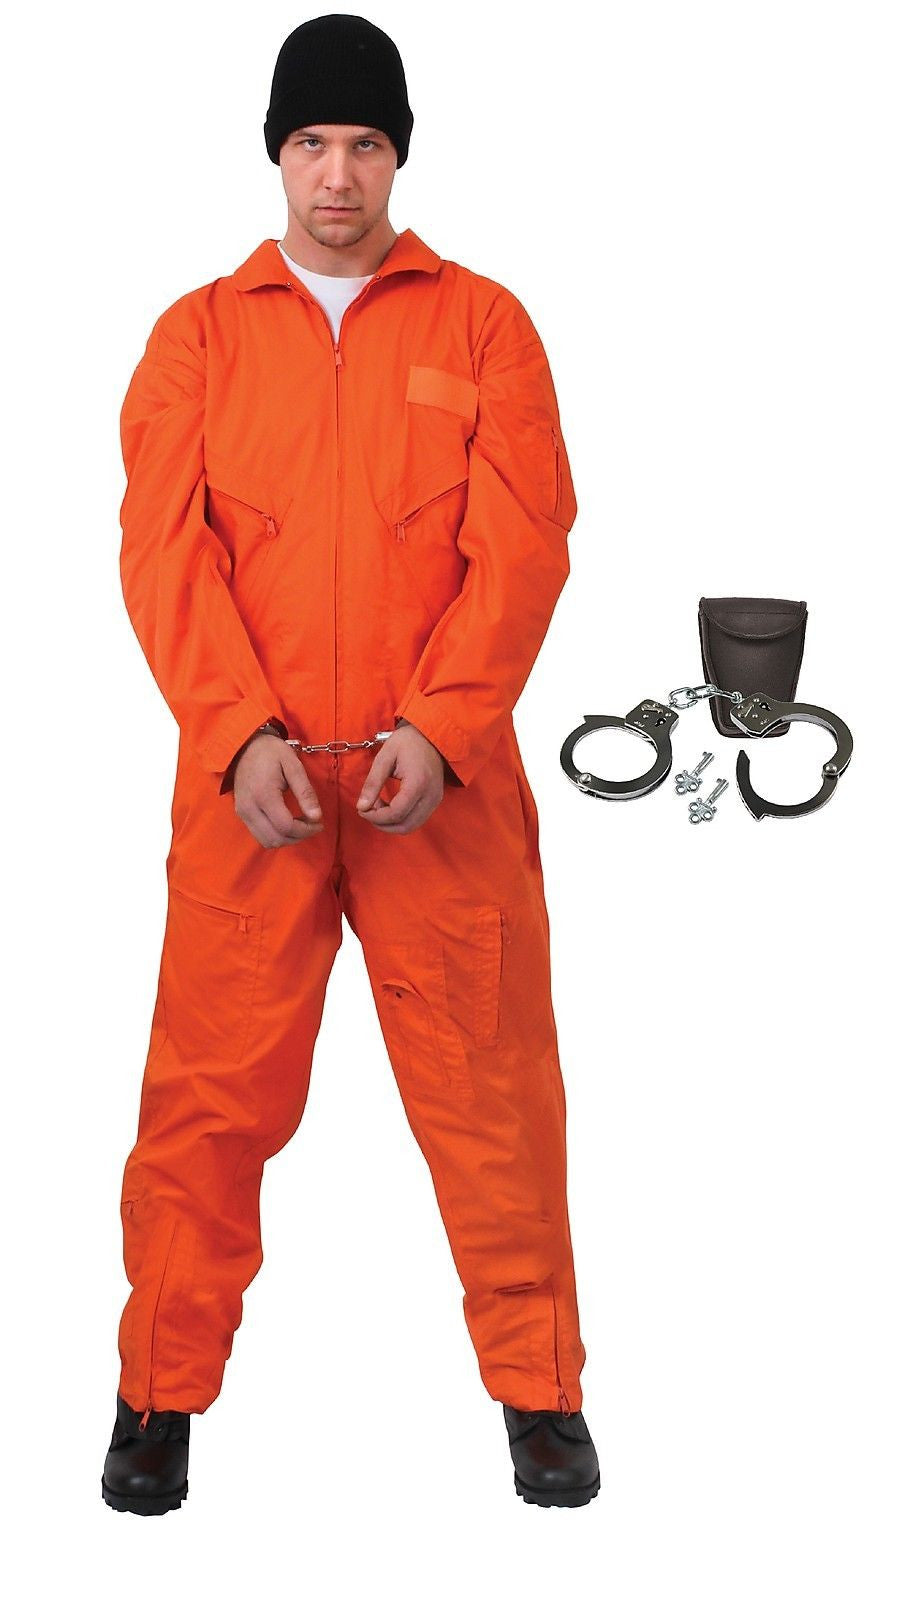 Adult's Inmate Prisoner Halloween Costume